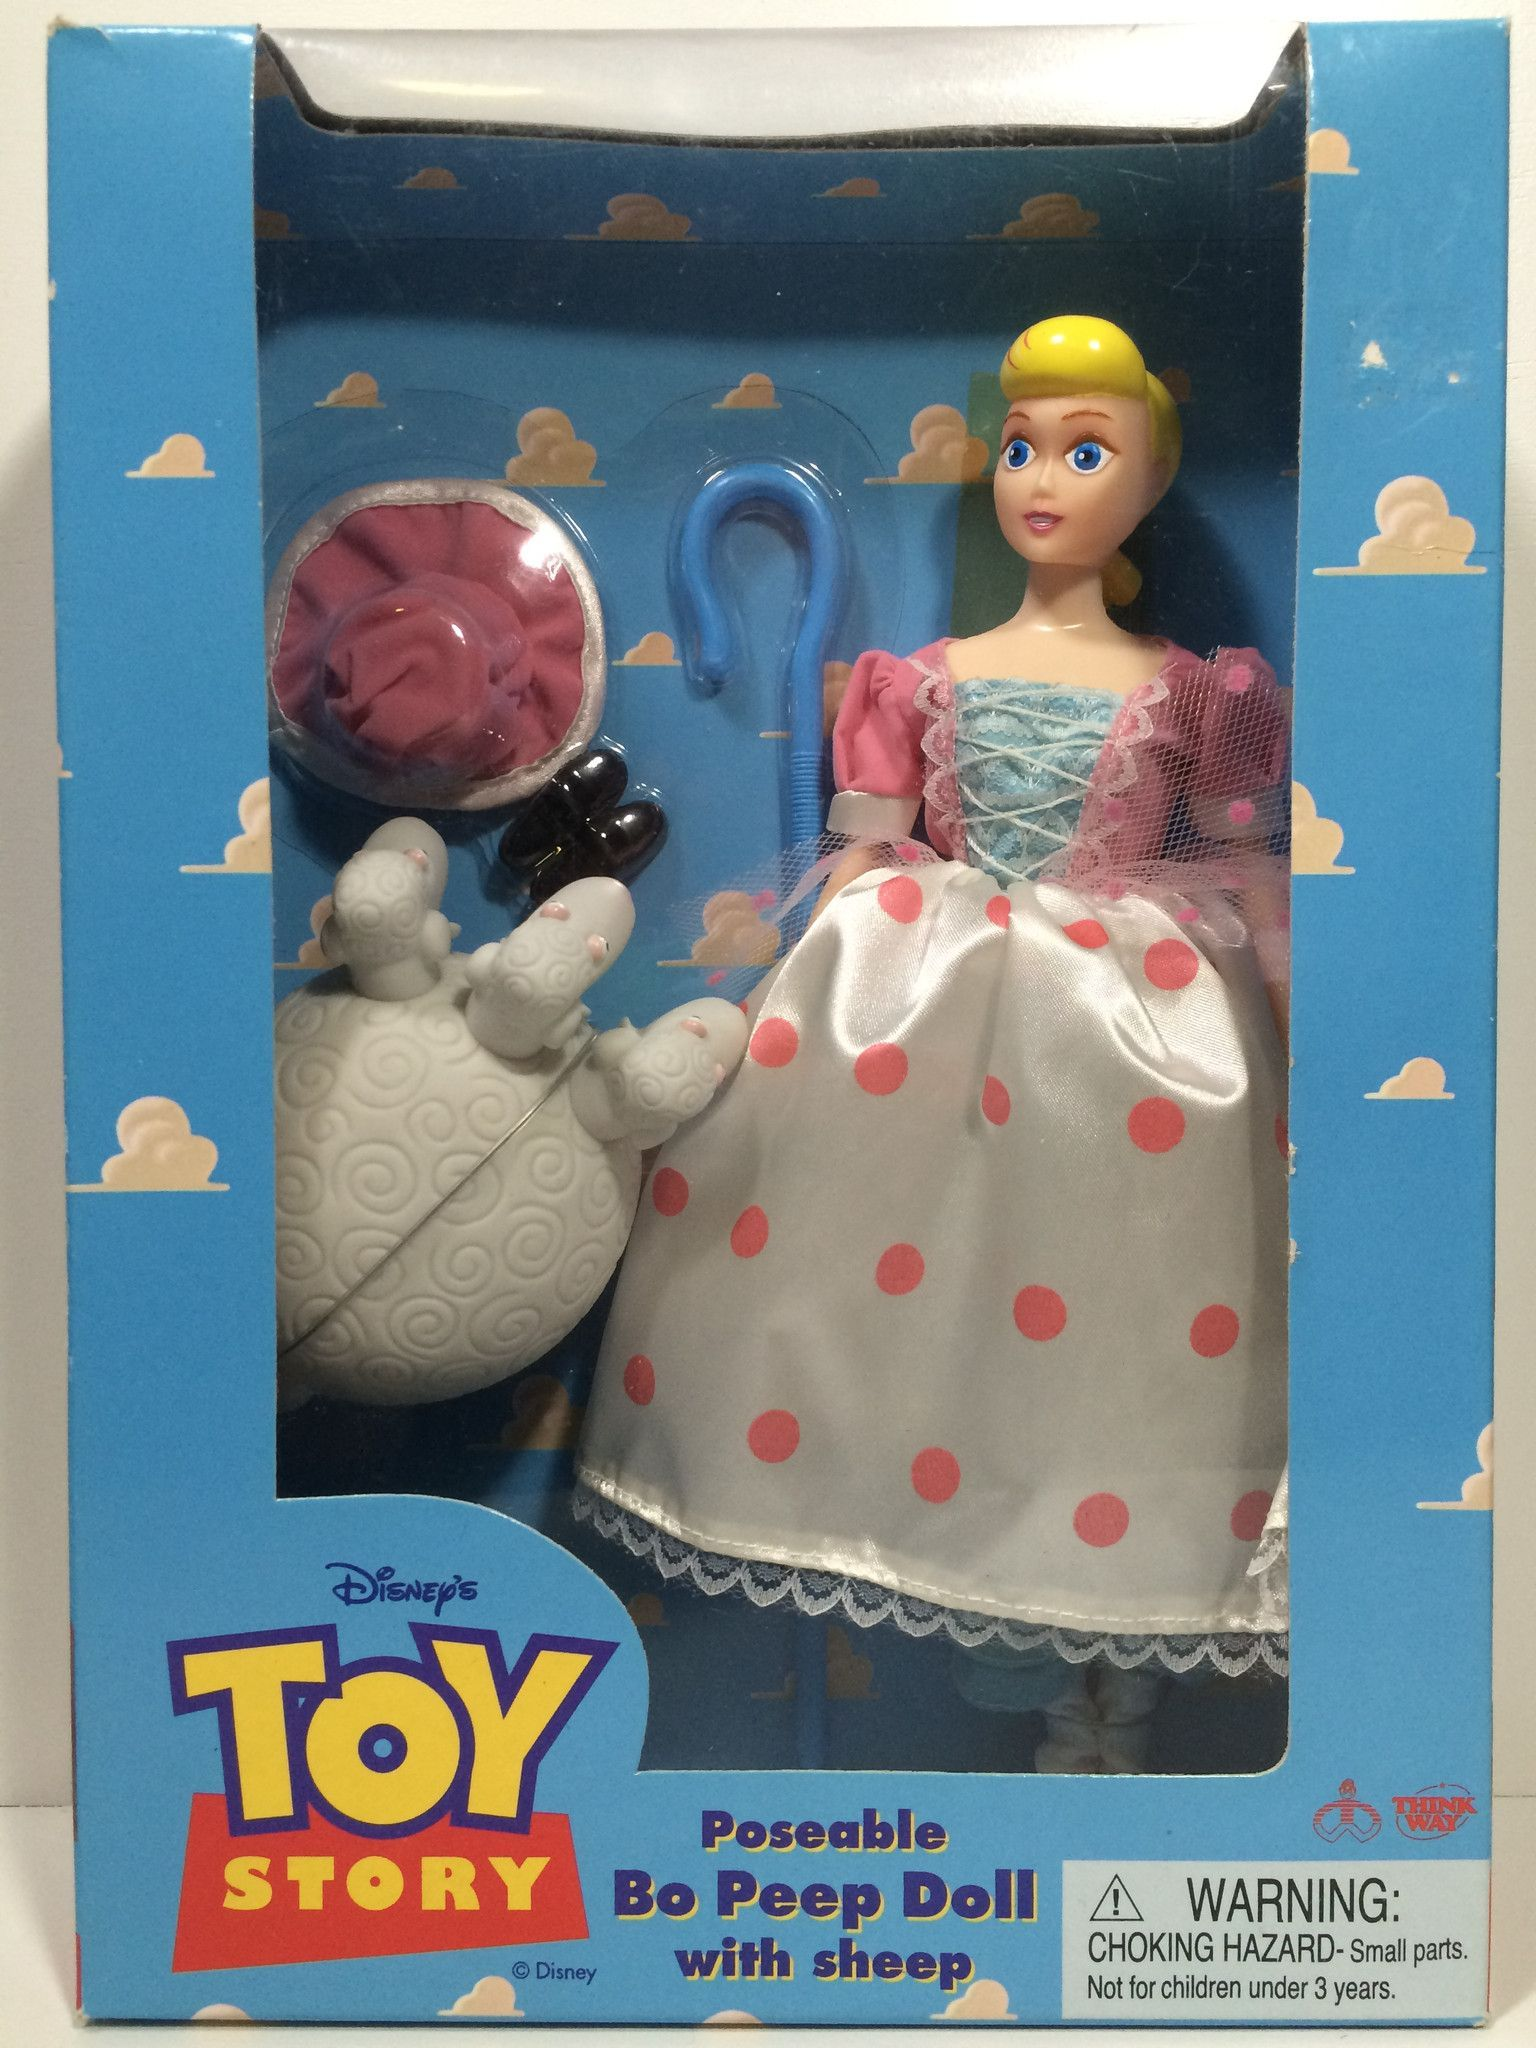 Toy Story Toys Vintage Tas030247 Disney Toy Story Poseable Bo Peep Doll With